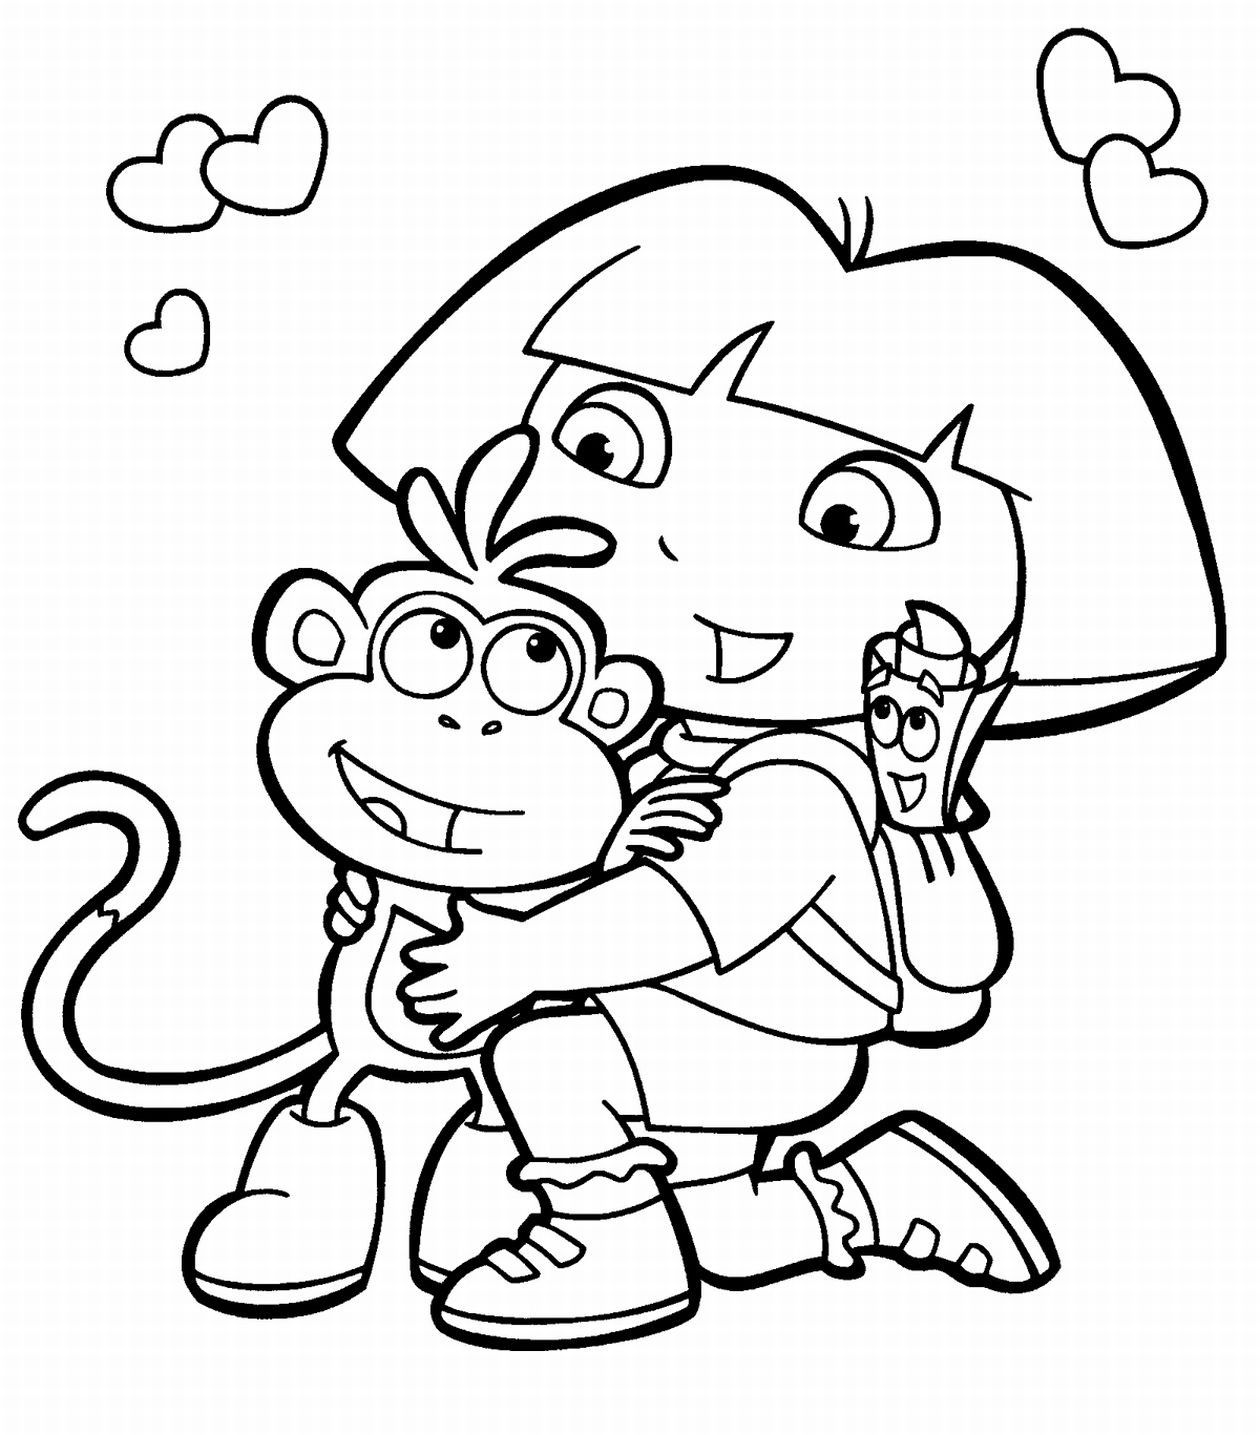 Free coloring pages for young adults - Free Kids Printable Coloring Pages Http Freecoloringpage Info Free